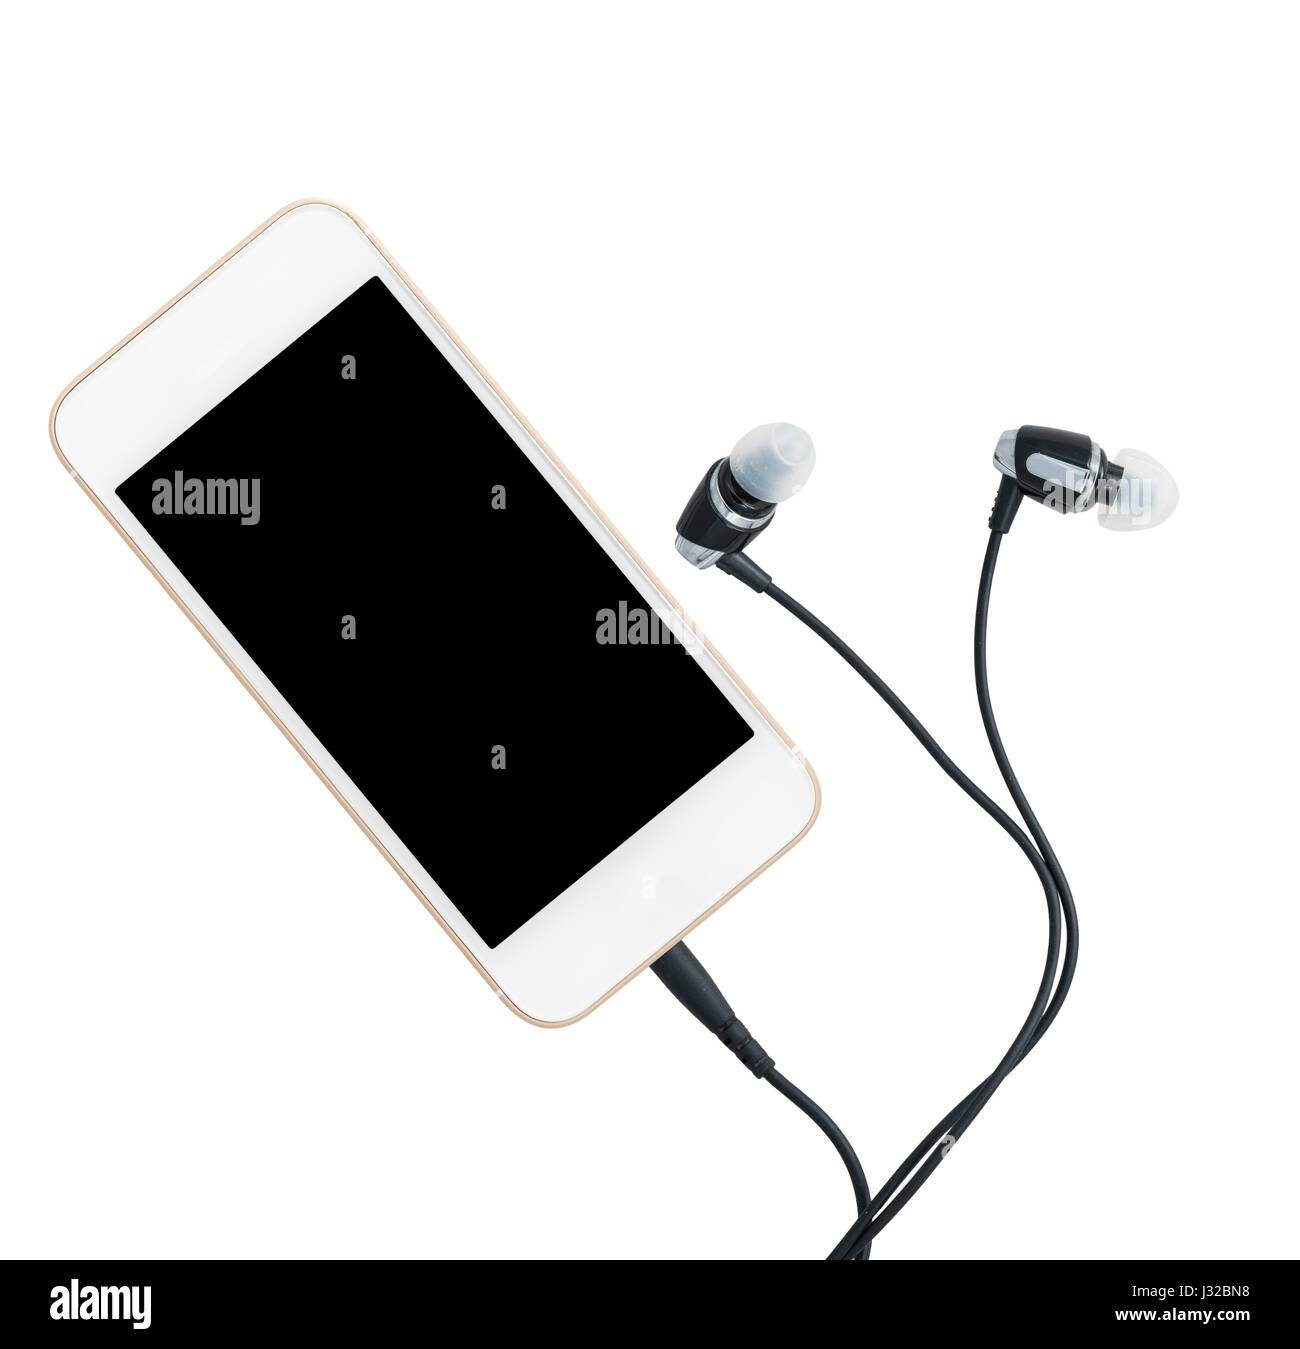 MP3 digital music player built into smartphone or mobile phone with earbuds - Stock Image